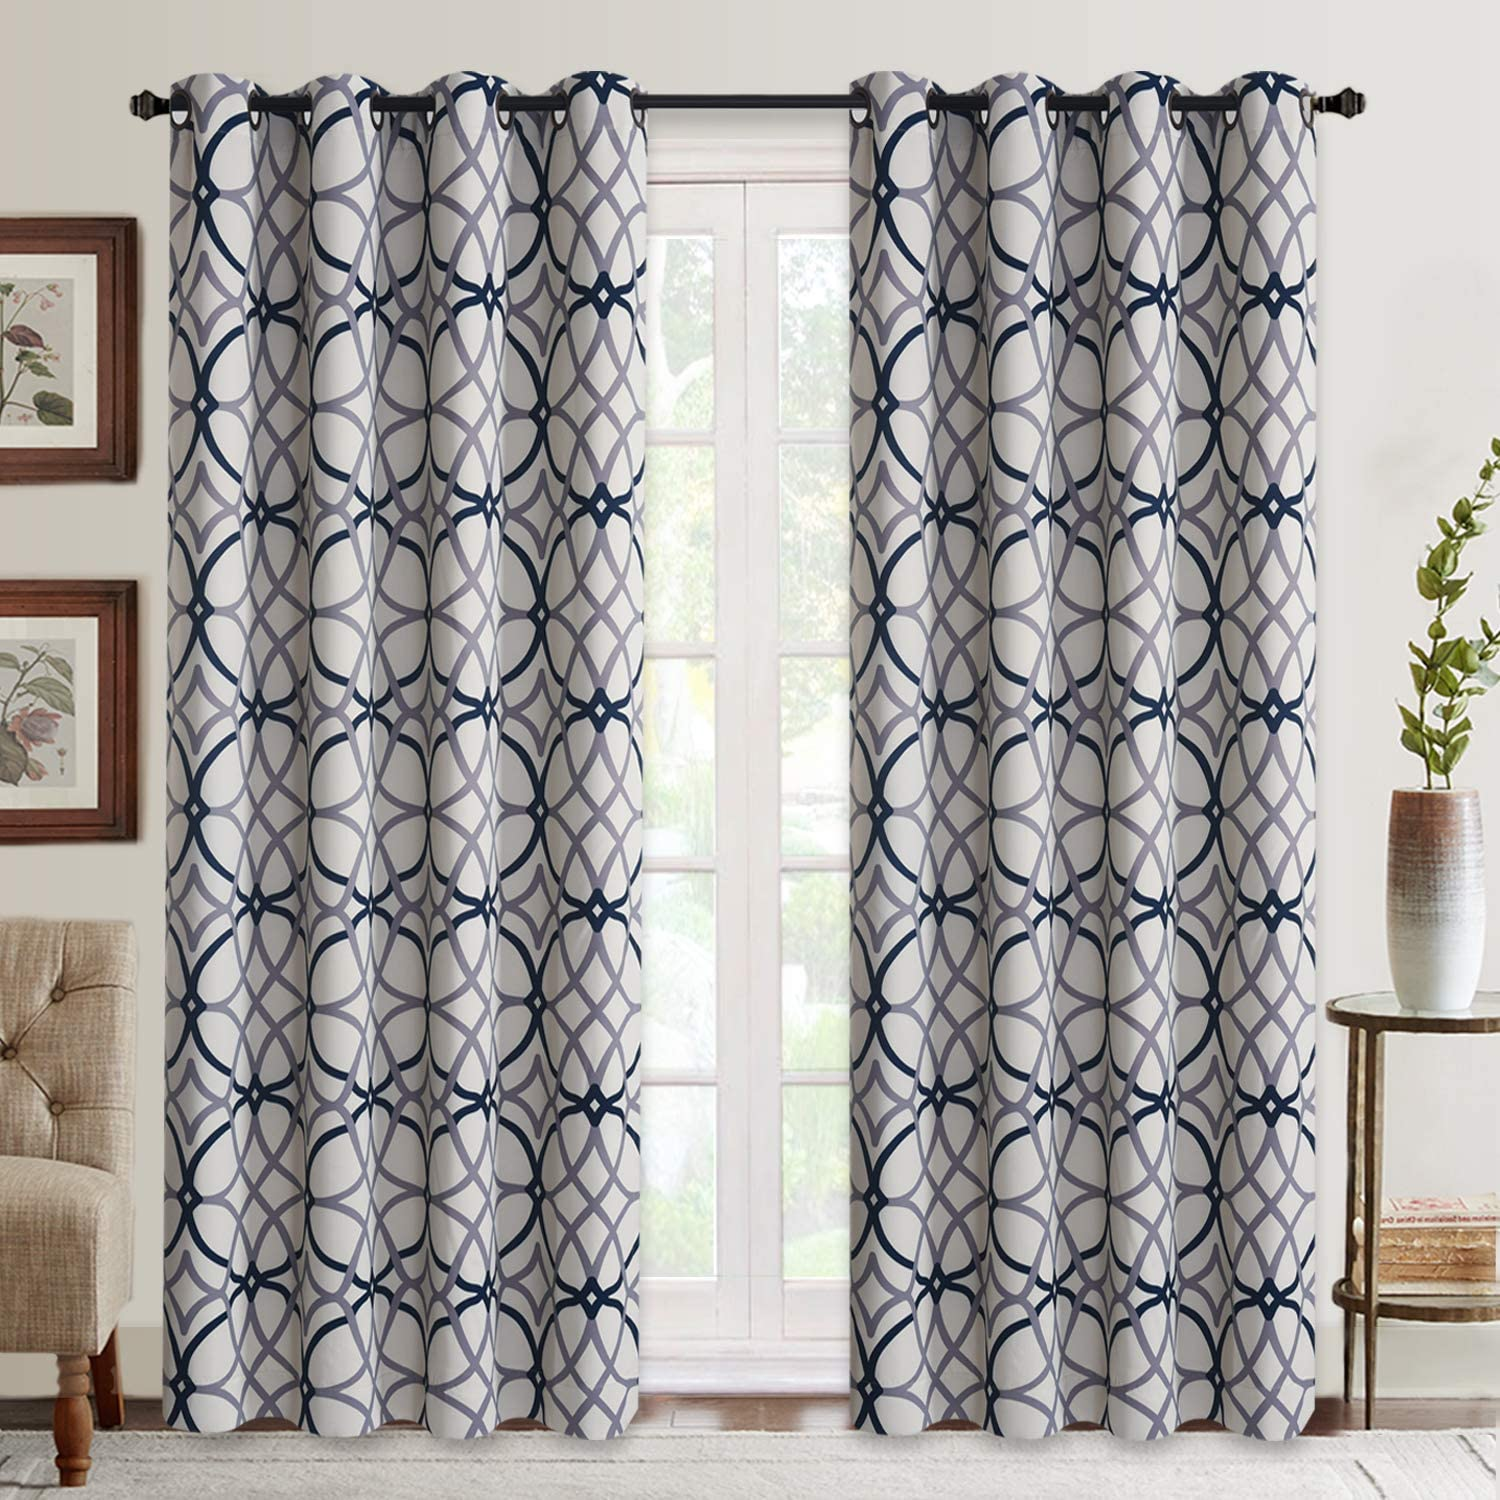 Amazon Com Curtains For Living Room Geometric Pattern Room Darkening Blackout Curtains For Bedroom Thermal Insulated Drapes Grey And Navy 52 By 84 Inch 2 Panels Kitchen Dining